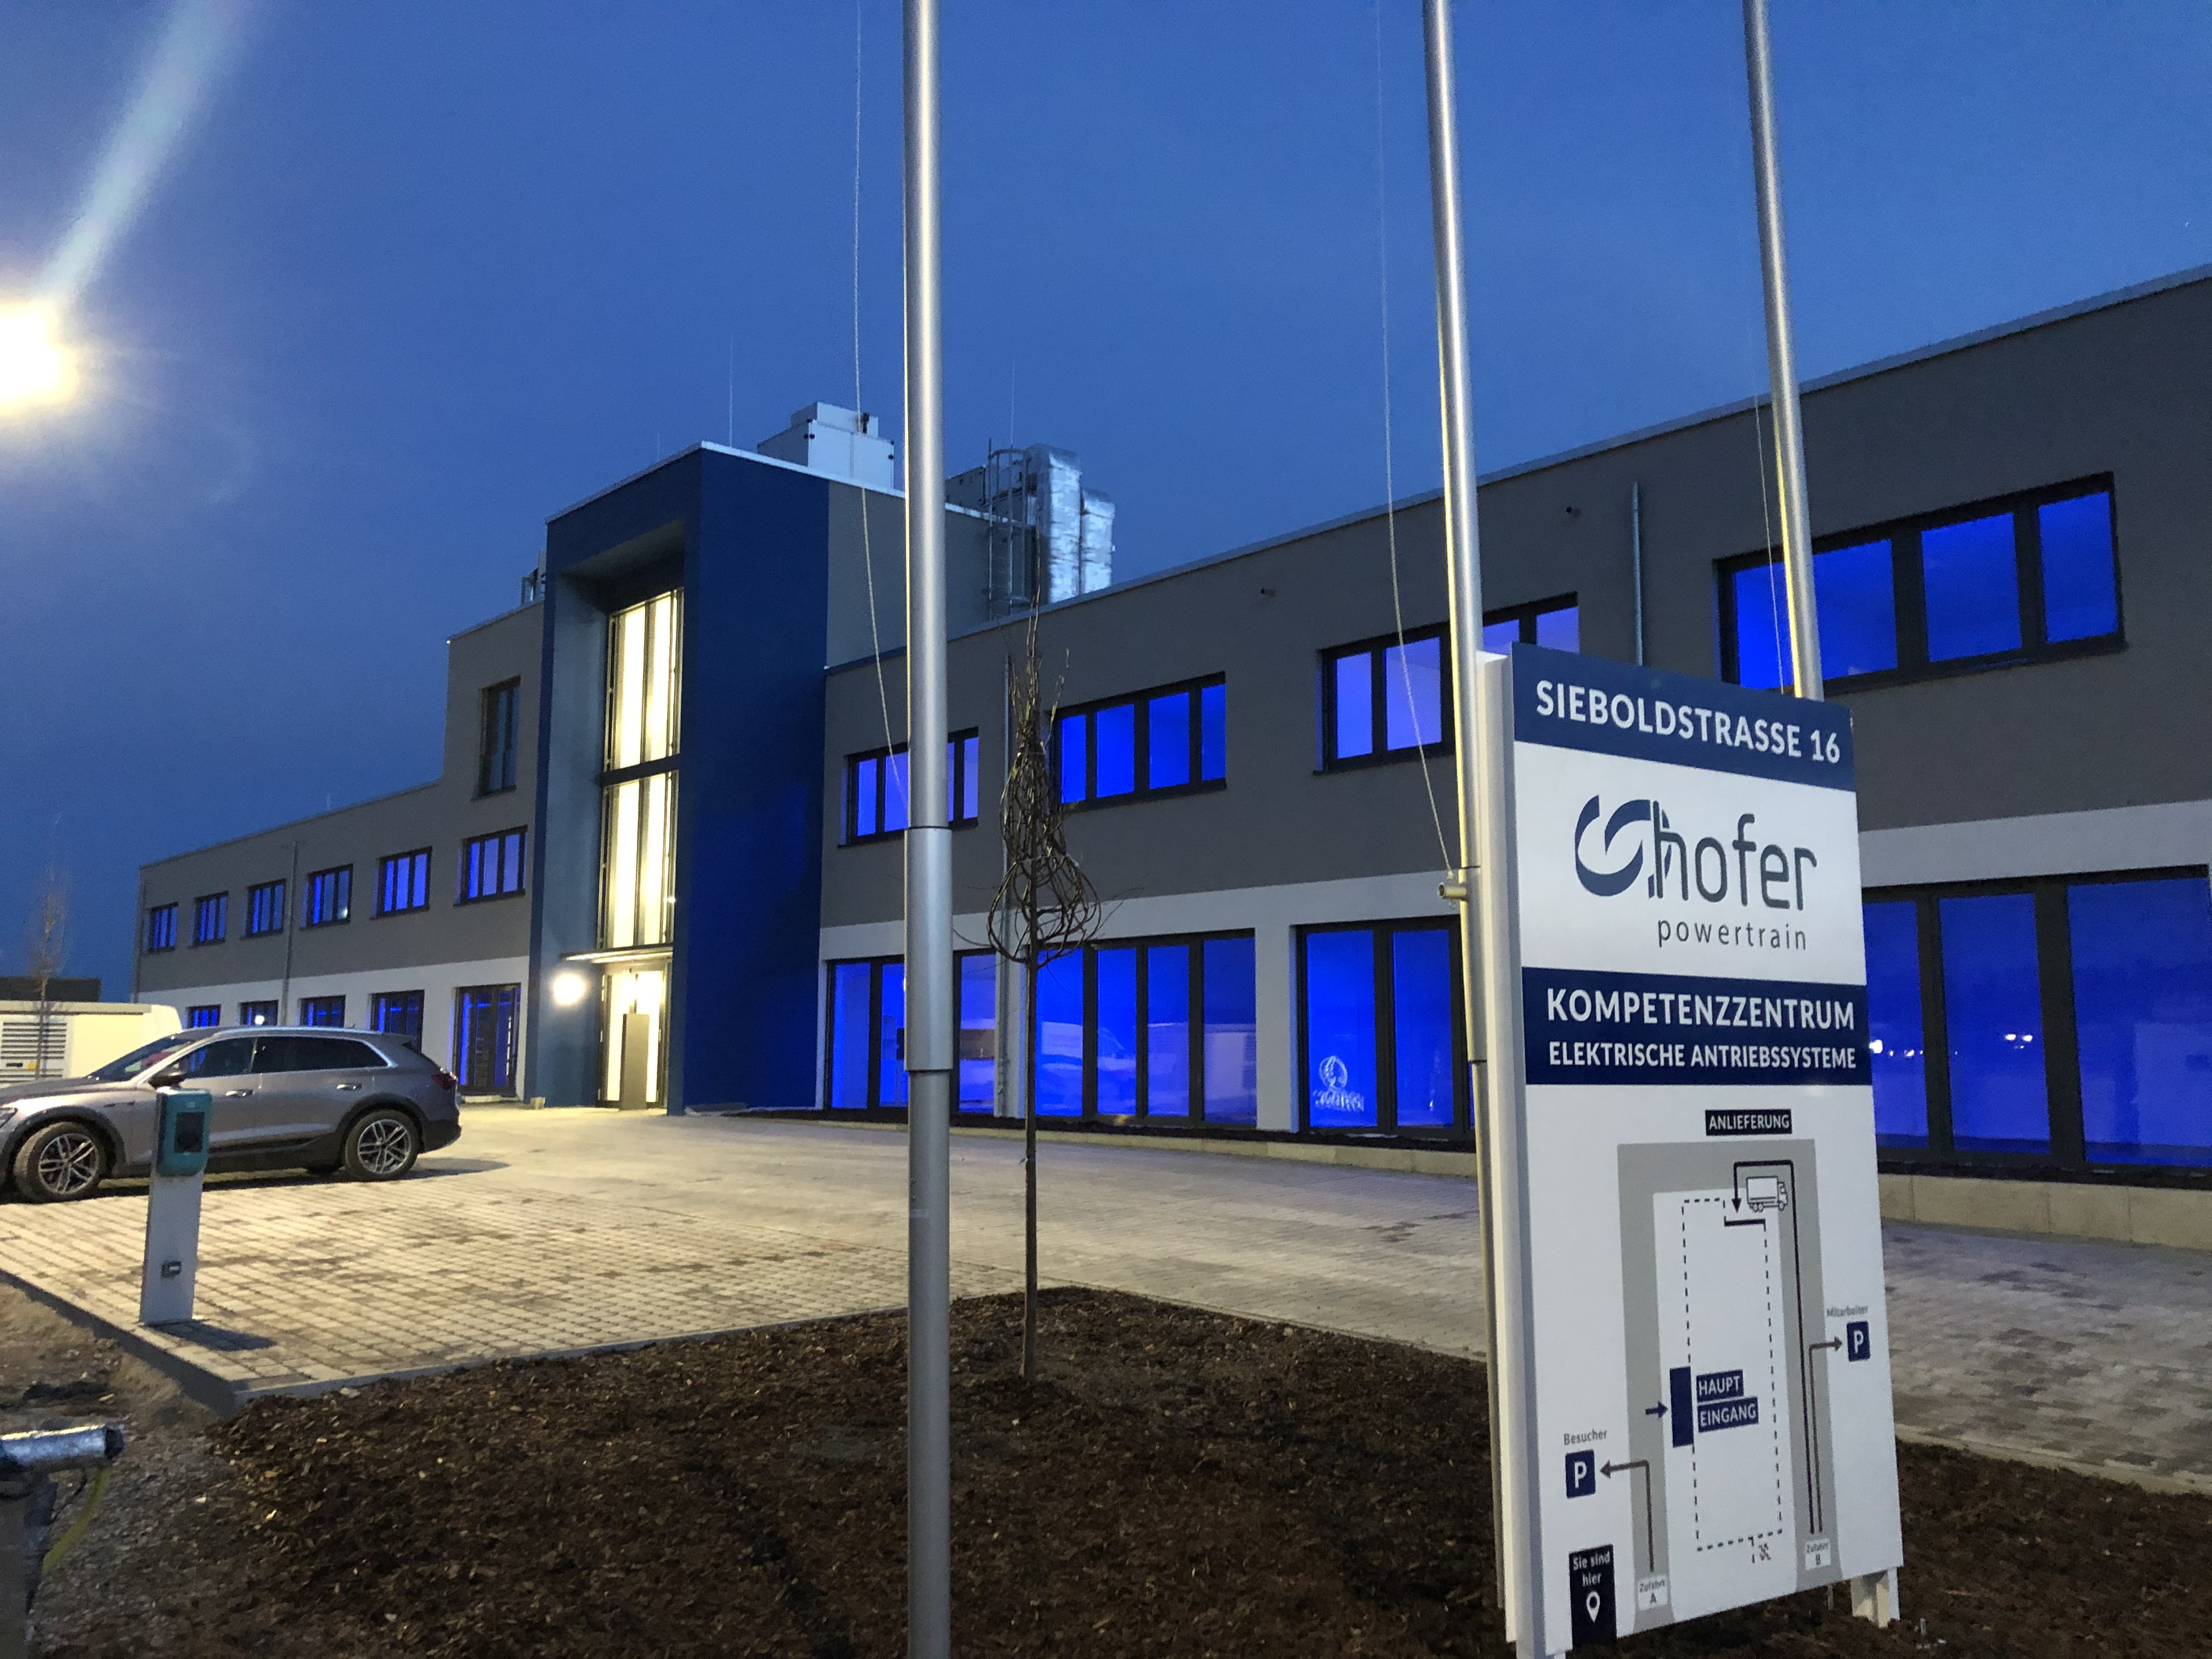 Our E-Mobility Competence Center within hofer powertrain moves into a new home in Estenfeld, near Würzburg / Bavaria